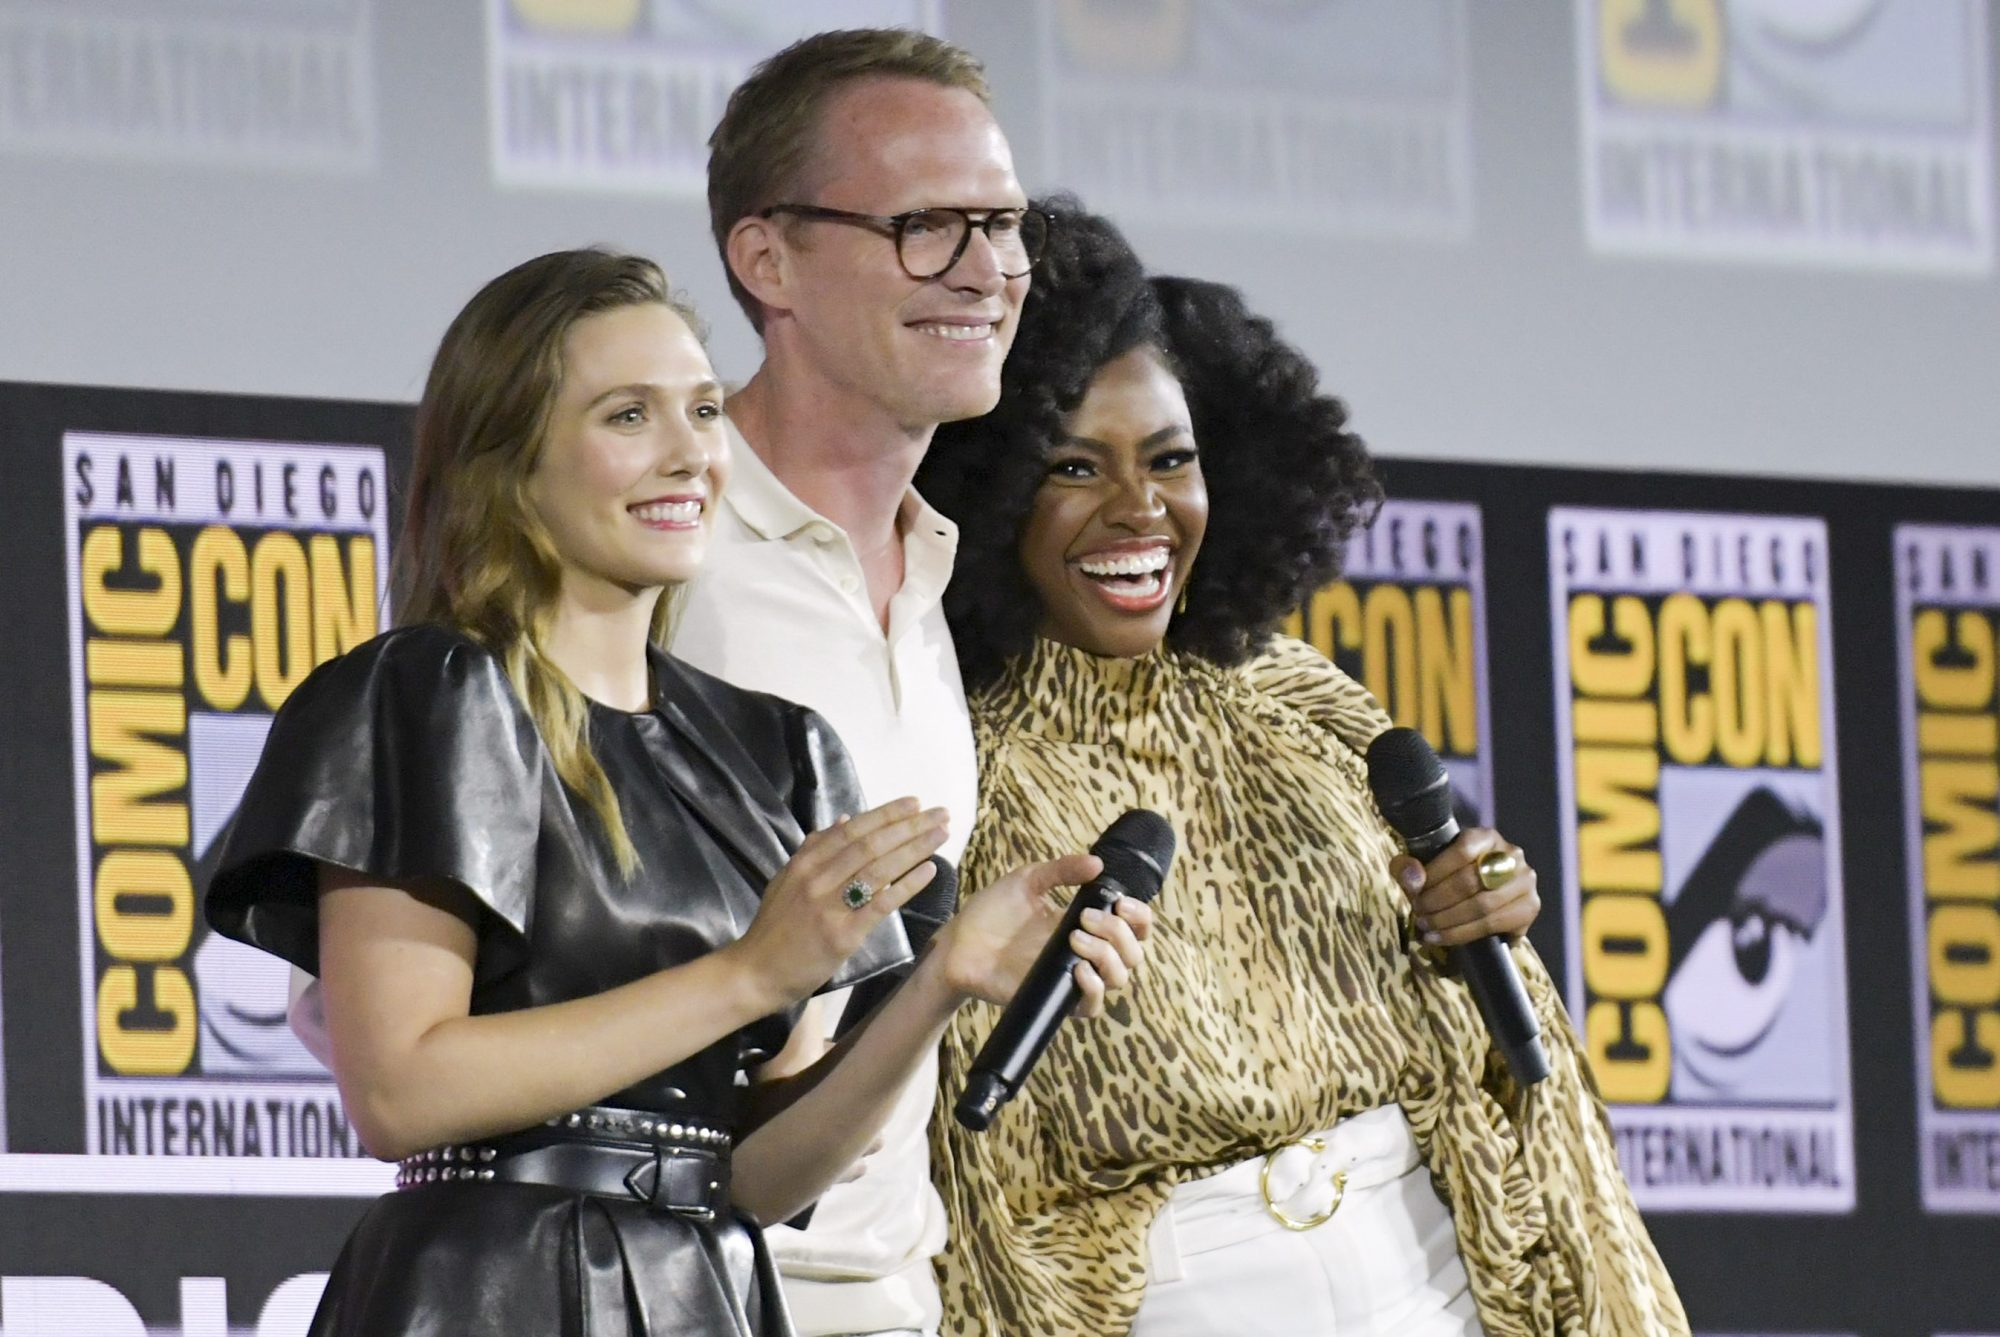 (FromL) US actress Elizabeth Olsen, English-US actor Paul Bethany and US actress Teyonah Parris speak on stage for the Marvel panel in Hall H of the Convention Center during Comic Con in San Diego, California on July 20, 2019. (Photo by Chris Delmas / AFP) (Photo credit should read CHRIS DELMAS/AFP/Getty Images)